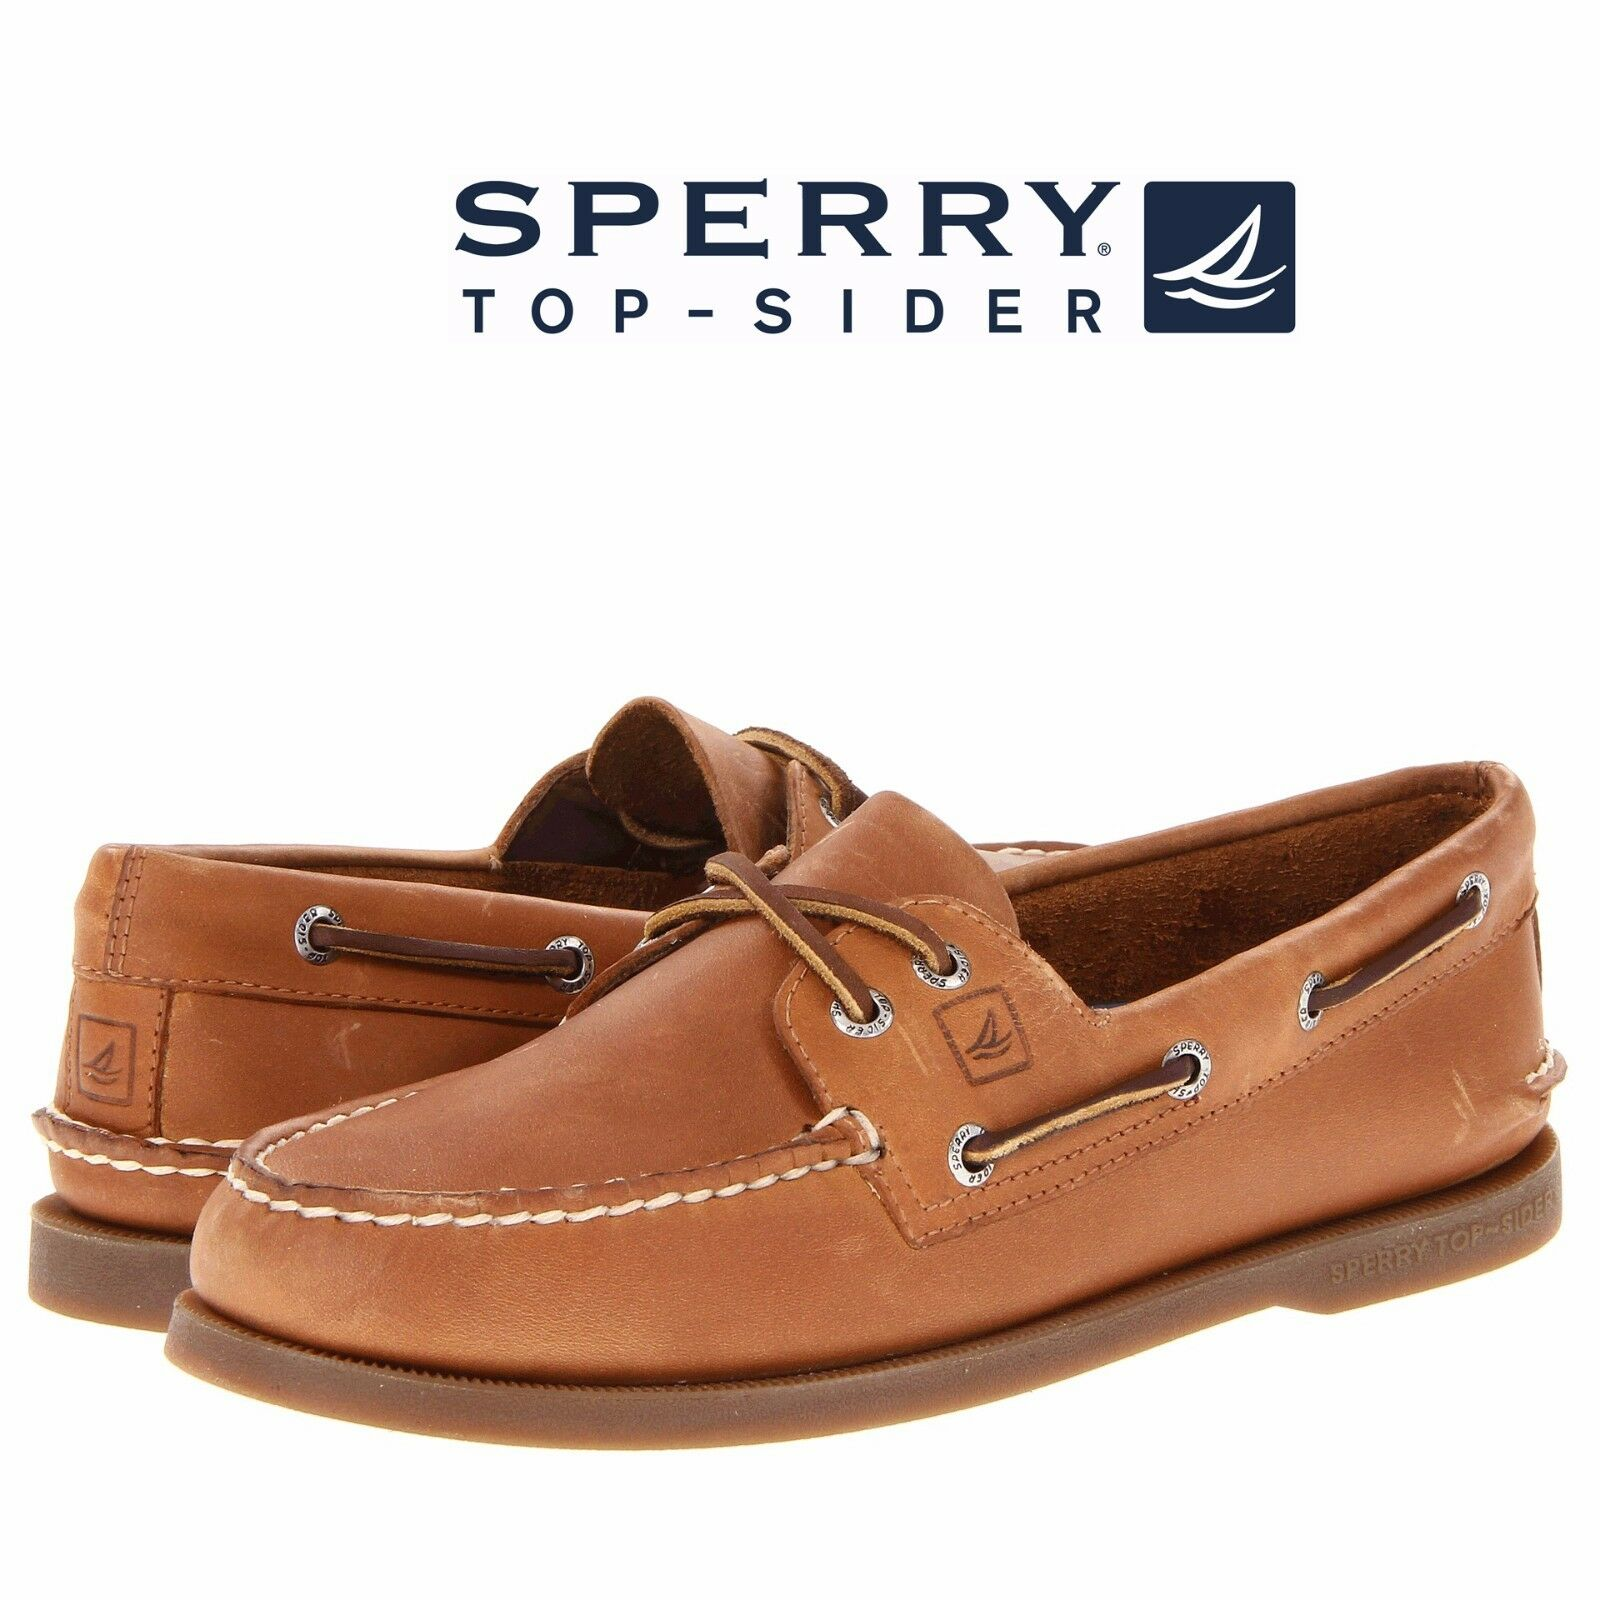 7827198024 Details about Men s Sperry Top-Sider Original A O 2-Eye Boat Shoes Sahara  Leather All Size NIB